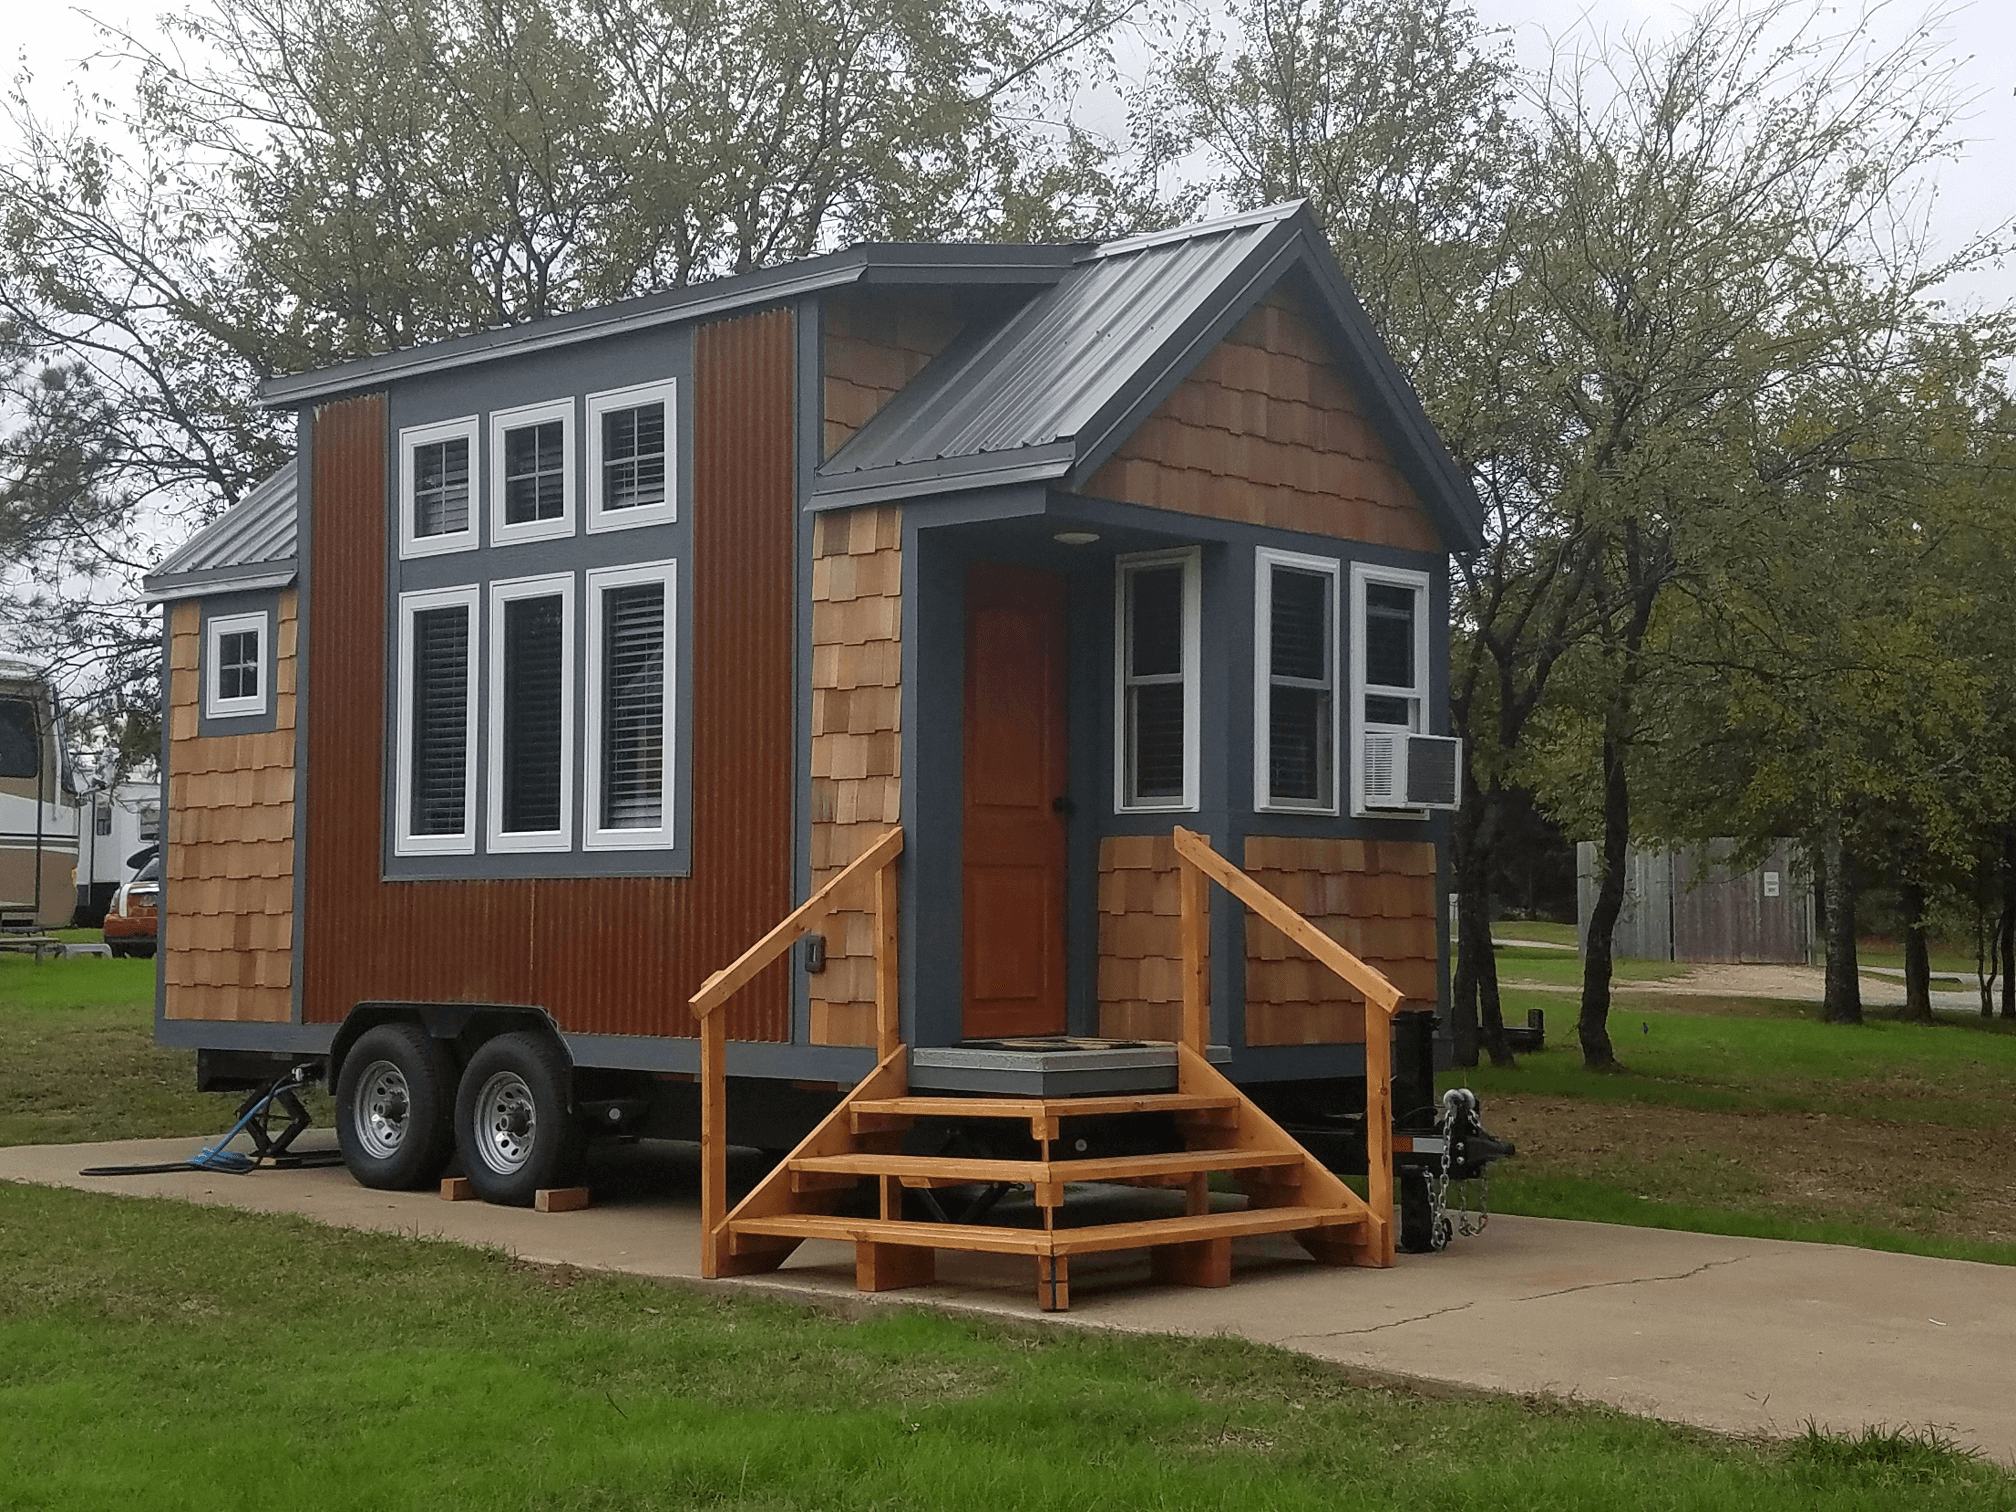 Tiny Houses For Rent In Texas Try First Before Buy Tiny Home Sale Tiny Houses For Rent Tiny House Luxury Tiny House Big Living